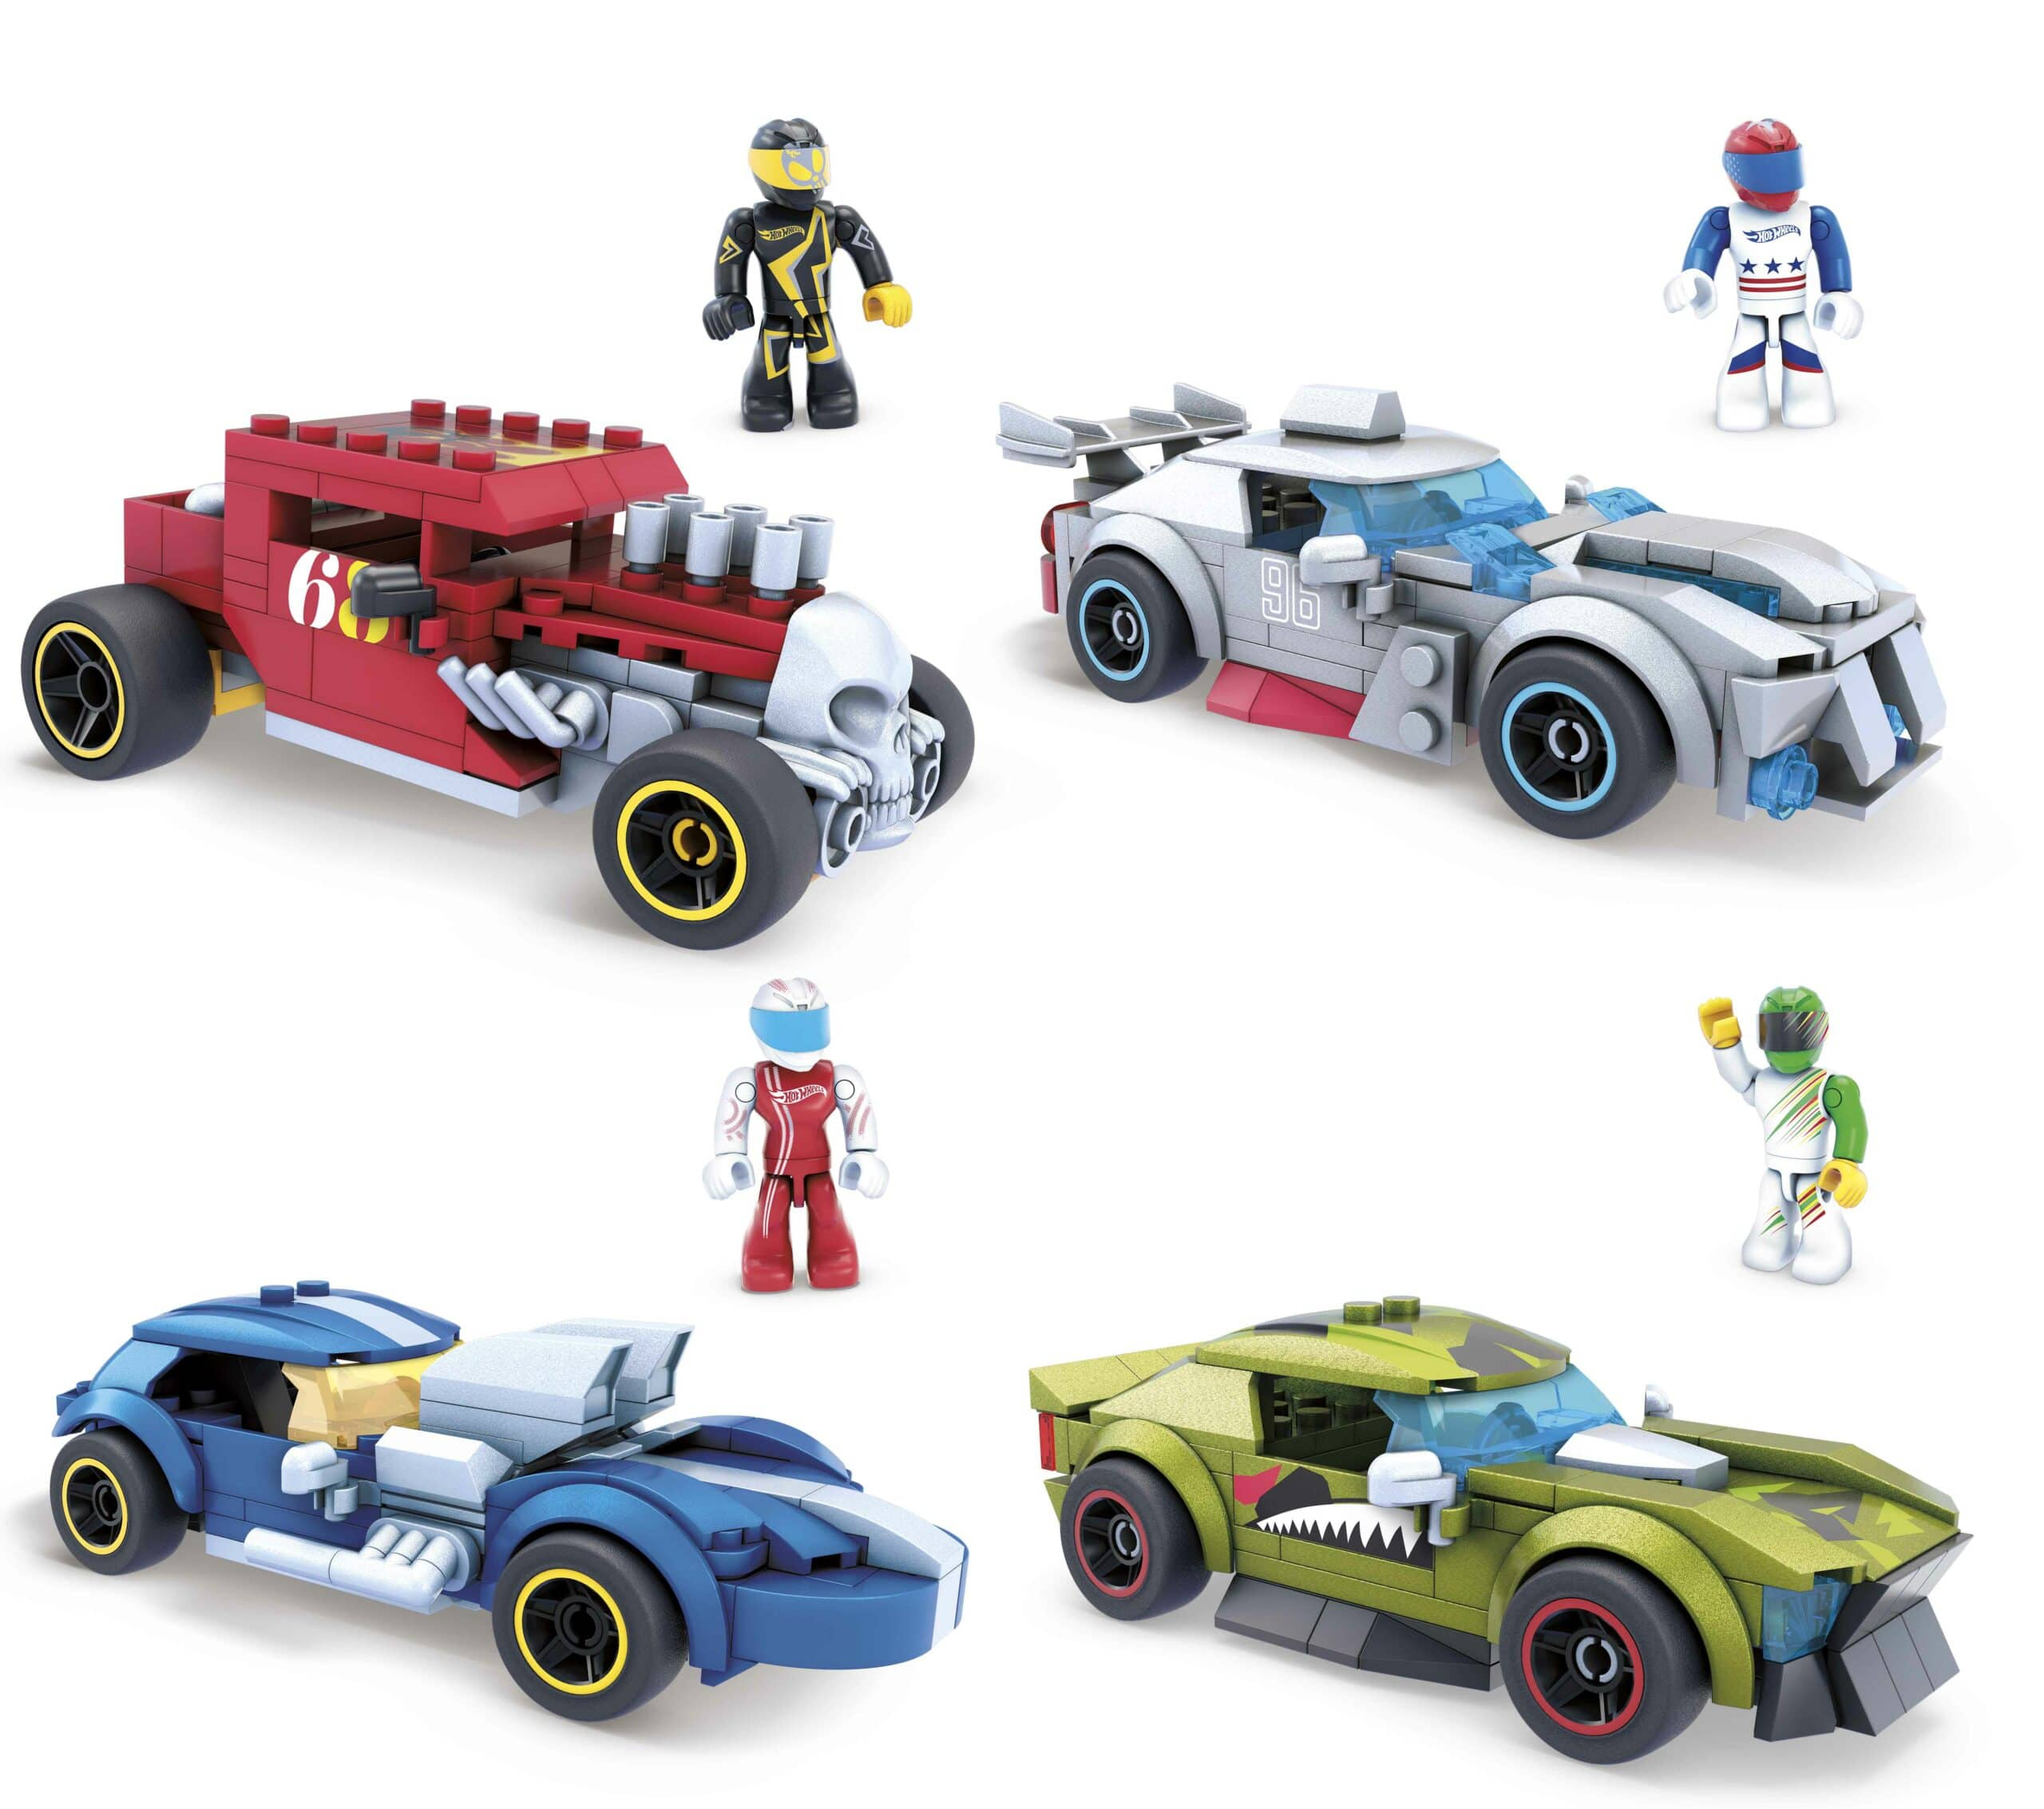 MEGA Construx launches a line of buildable Hot Wheels vehicles 19